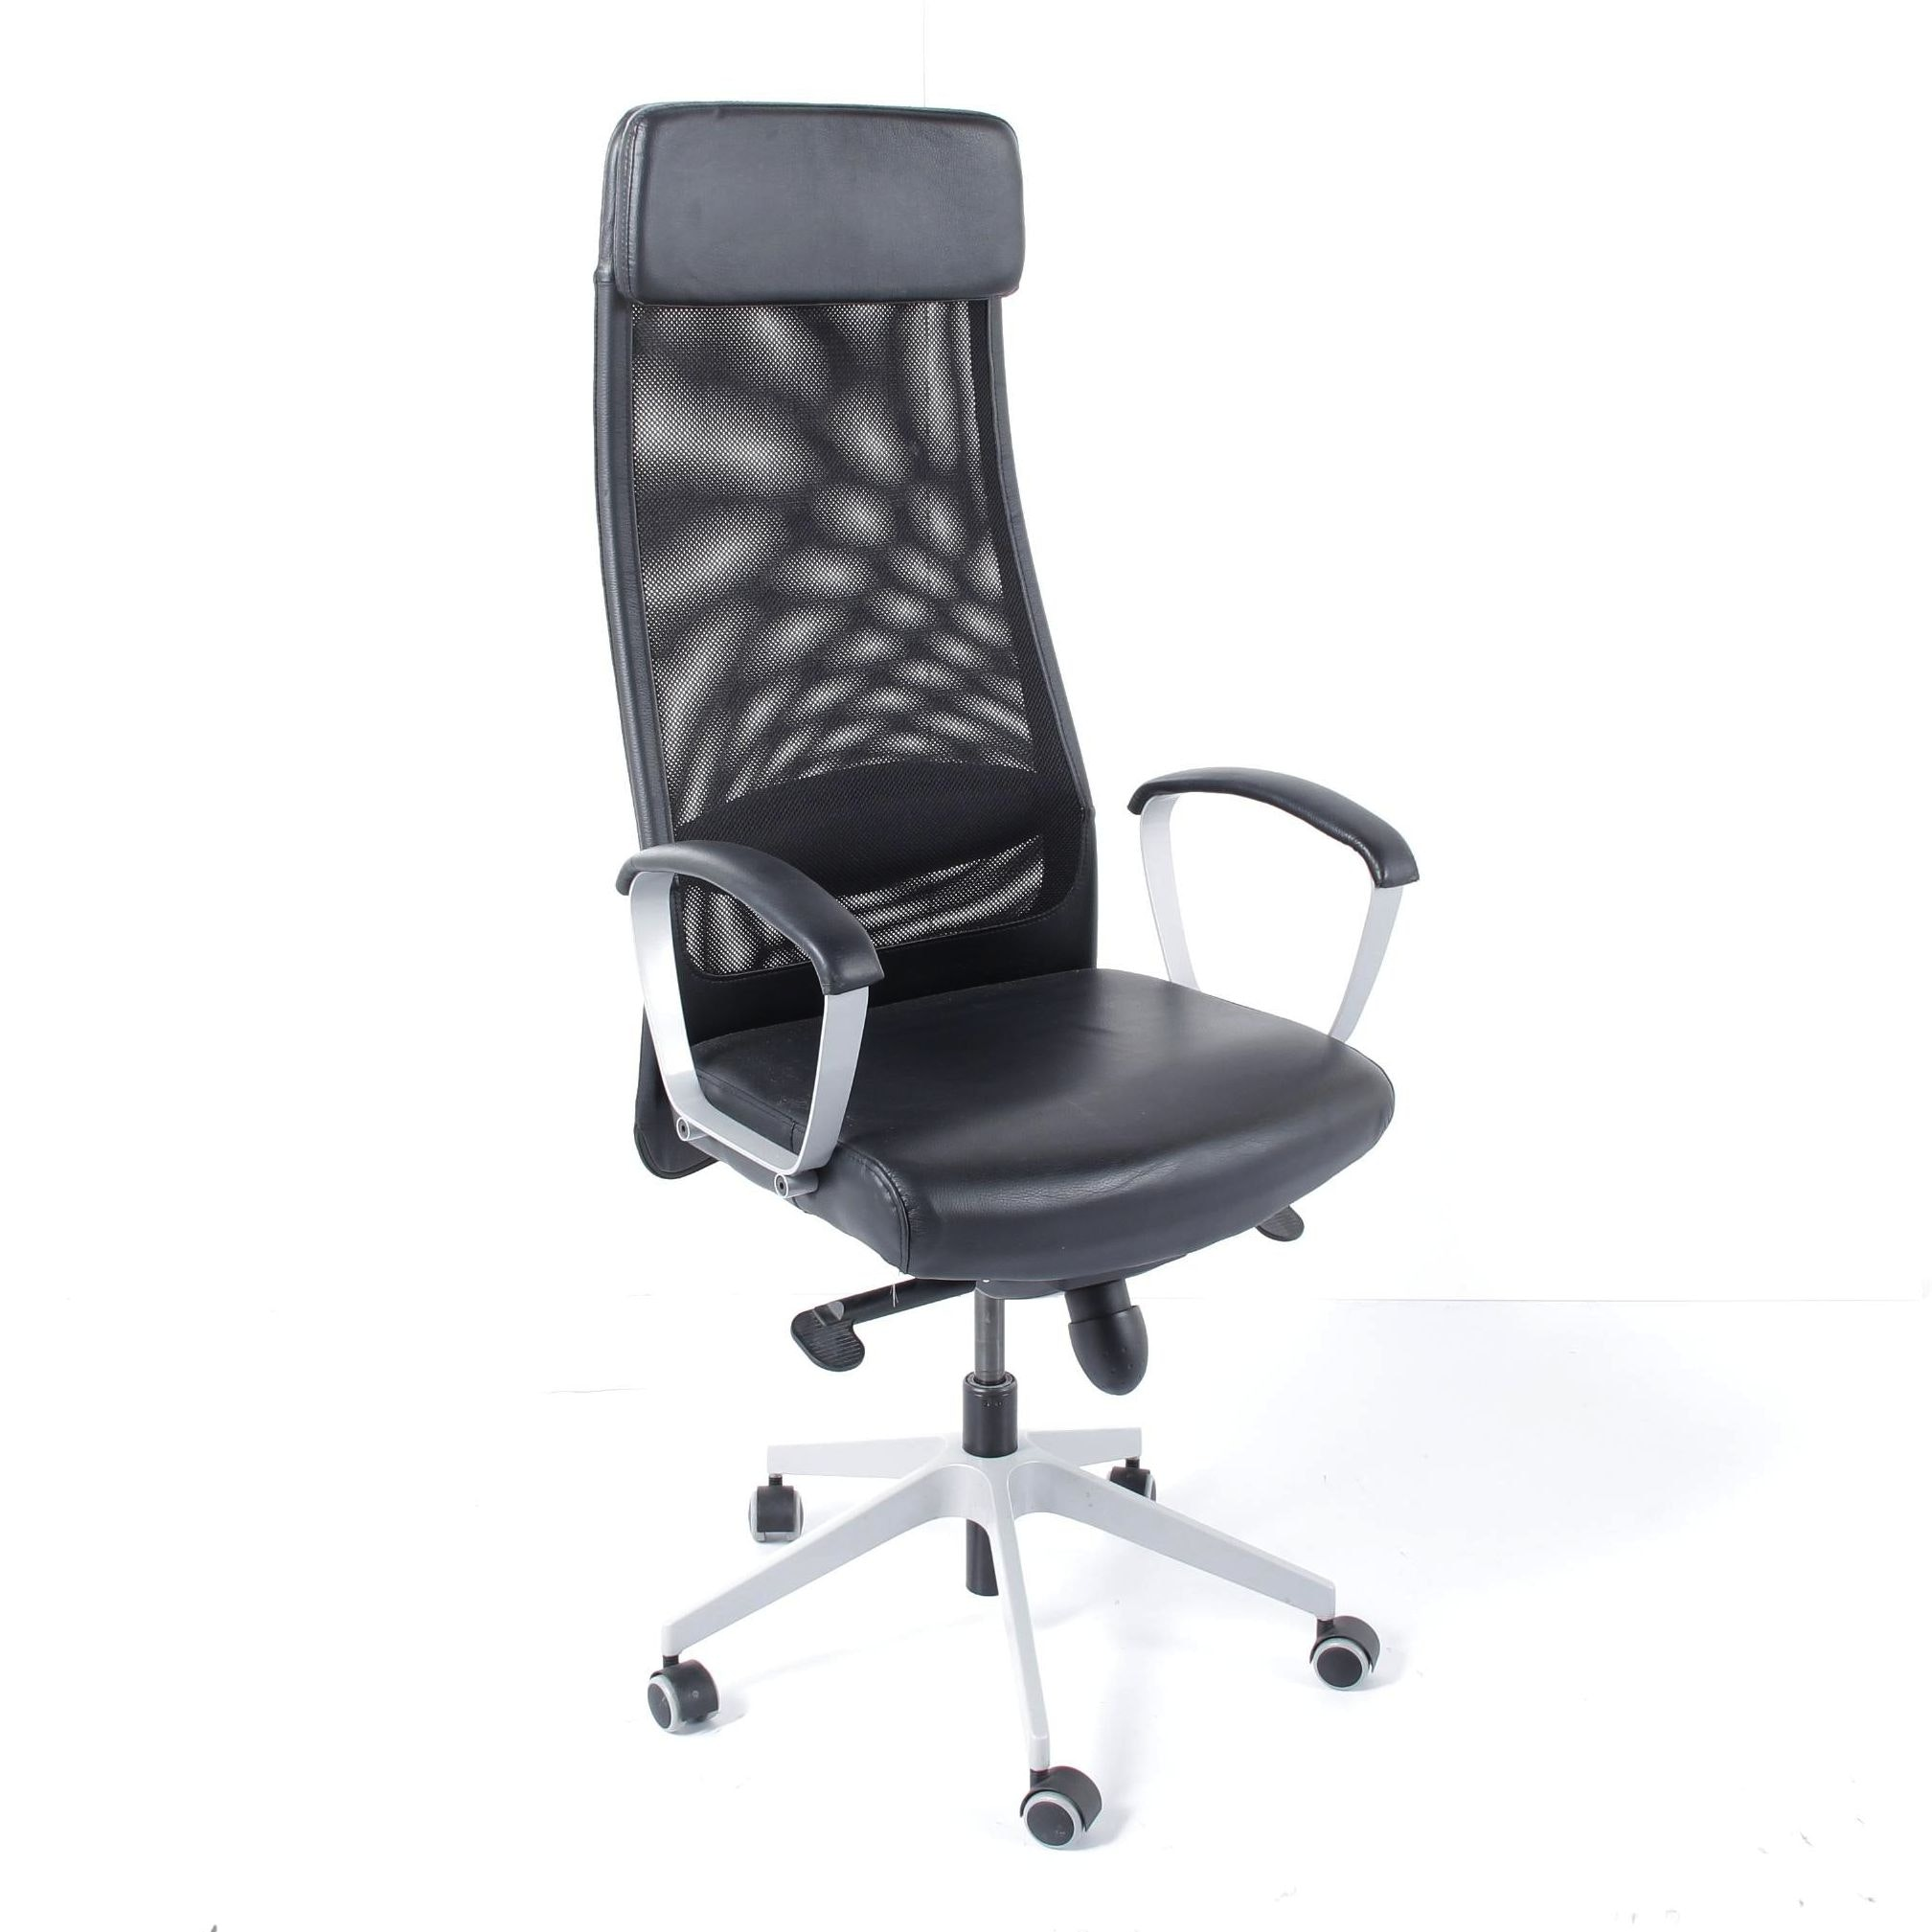 """Markus"" Office Chair by IKEA"